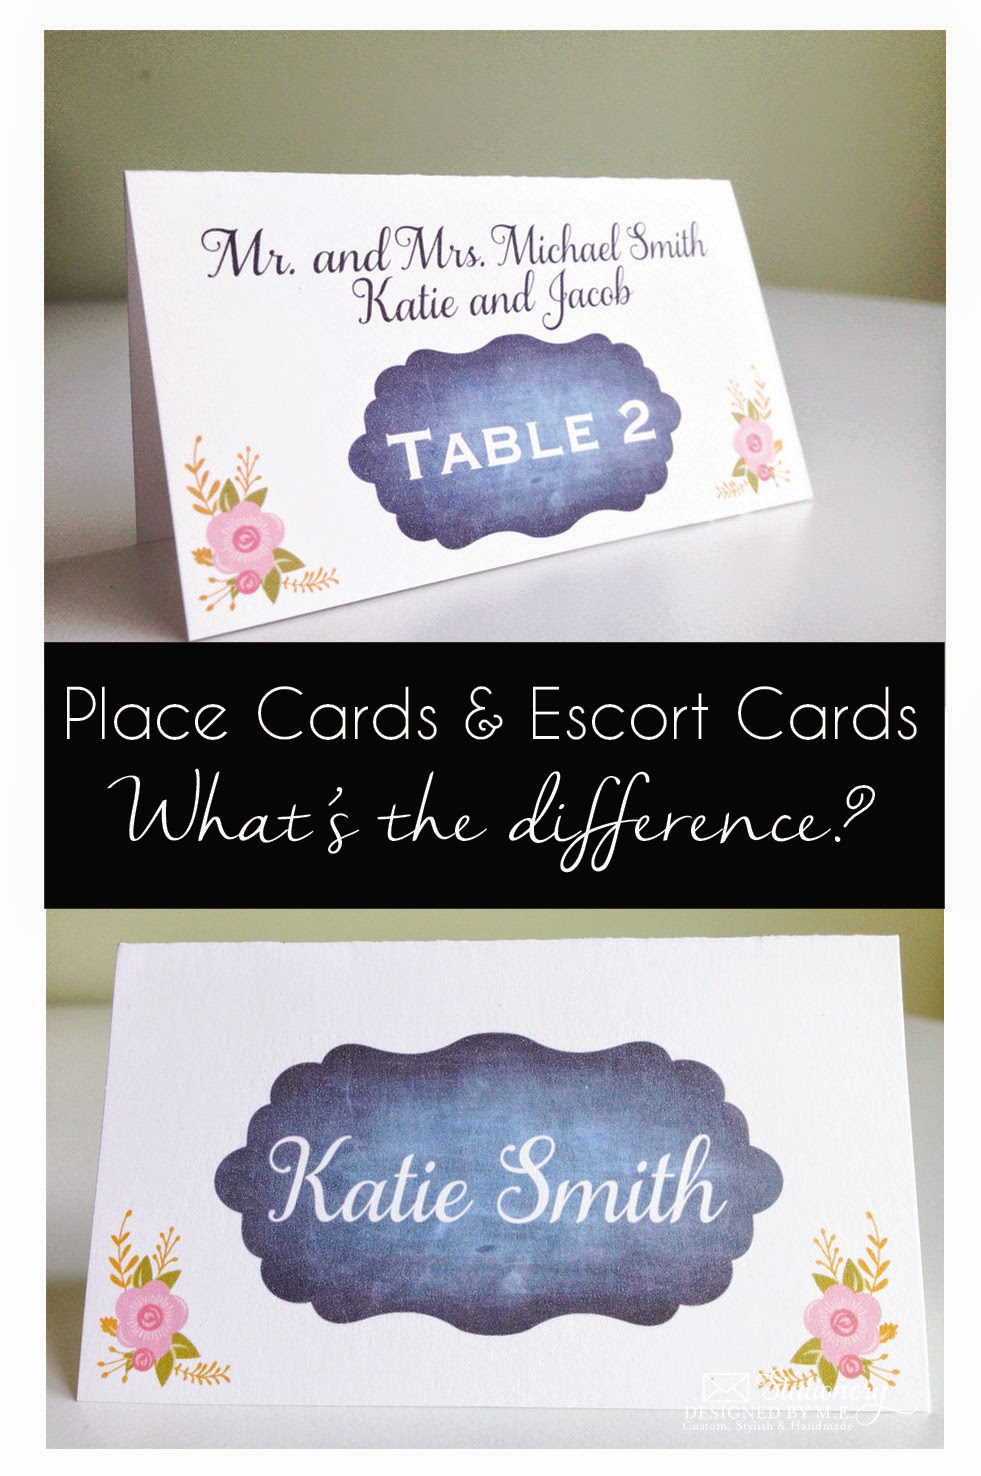 https://www.etsy.com/listing/188731692/custom-tented-place-cards-custom-escort?ref=shop_home_active_3